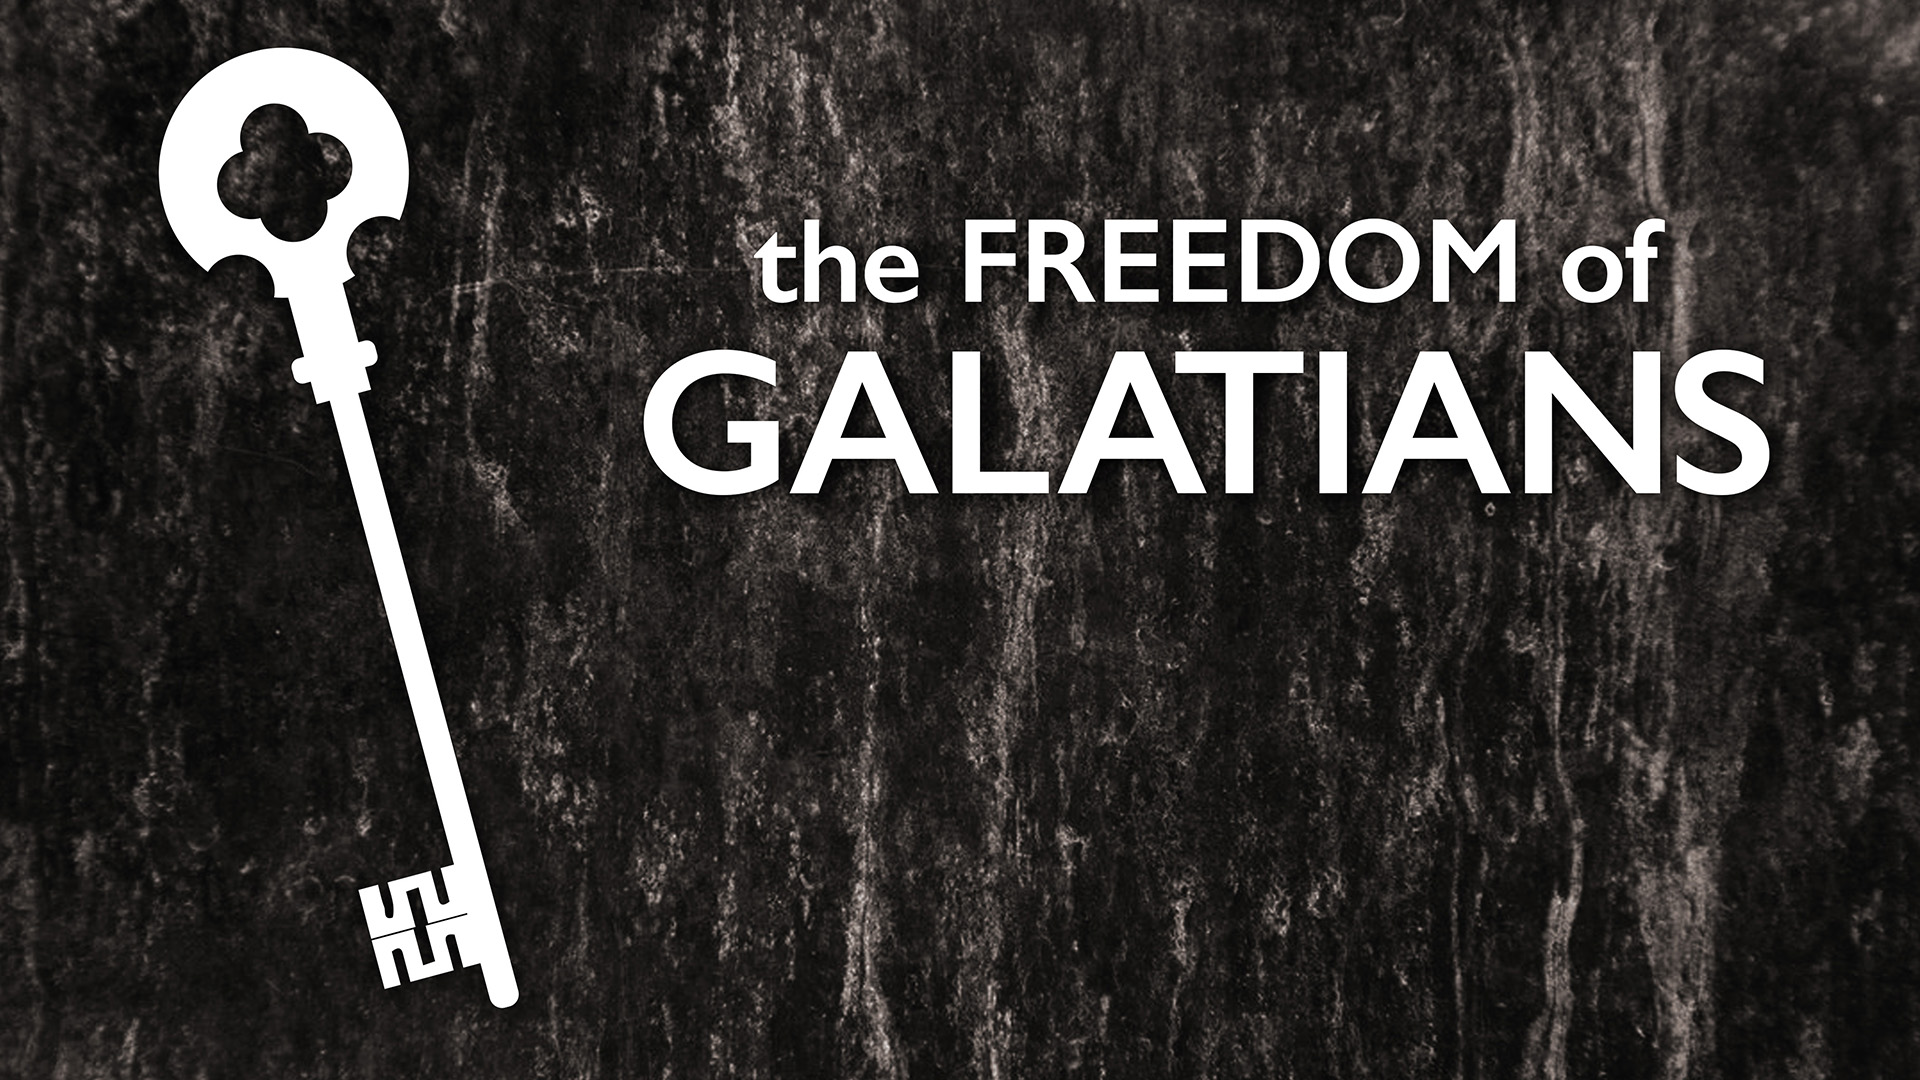 The Freedom of Galatians (2015)